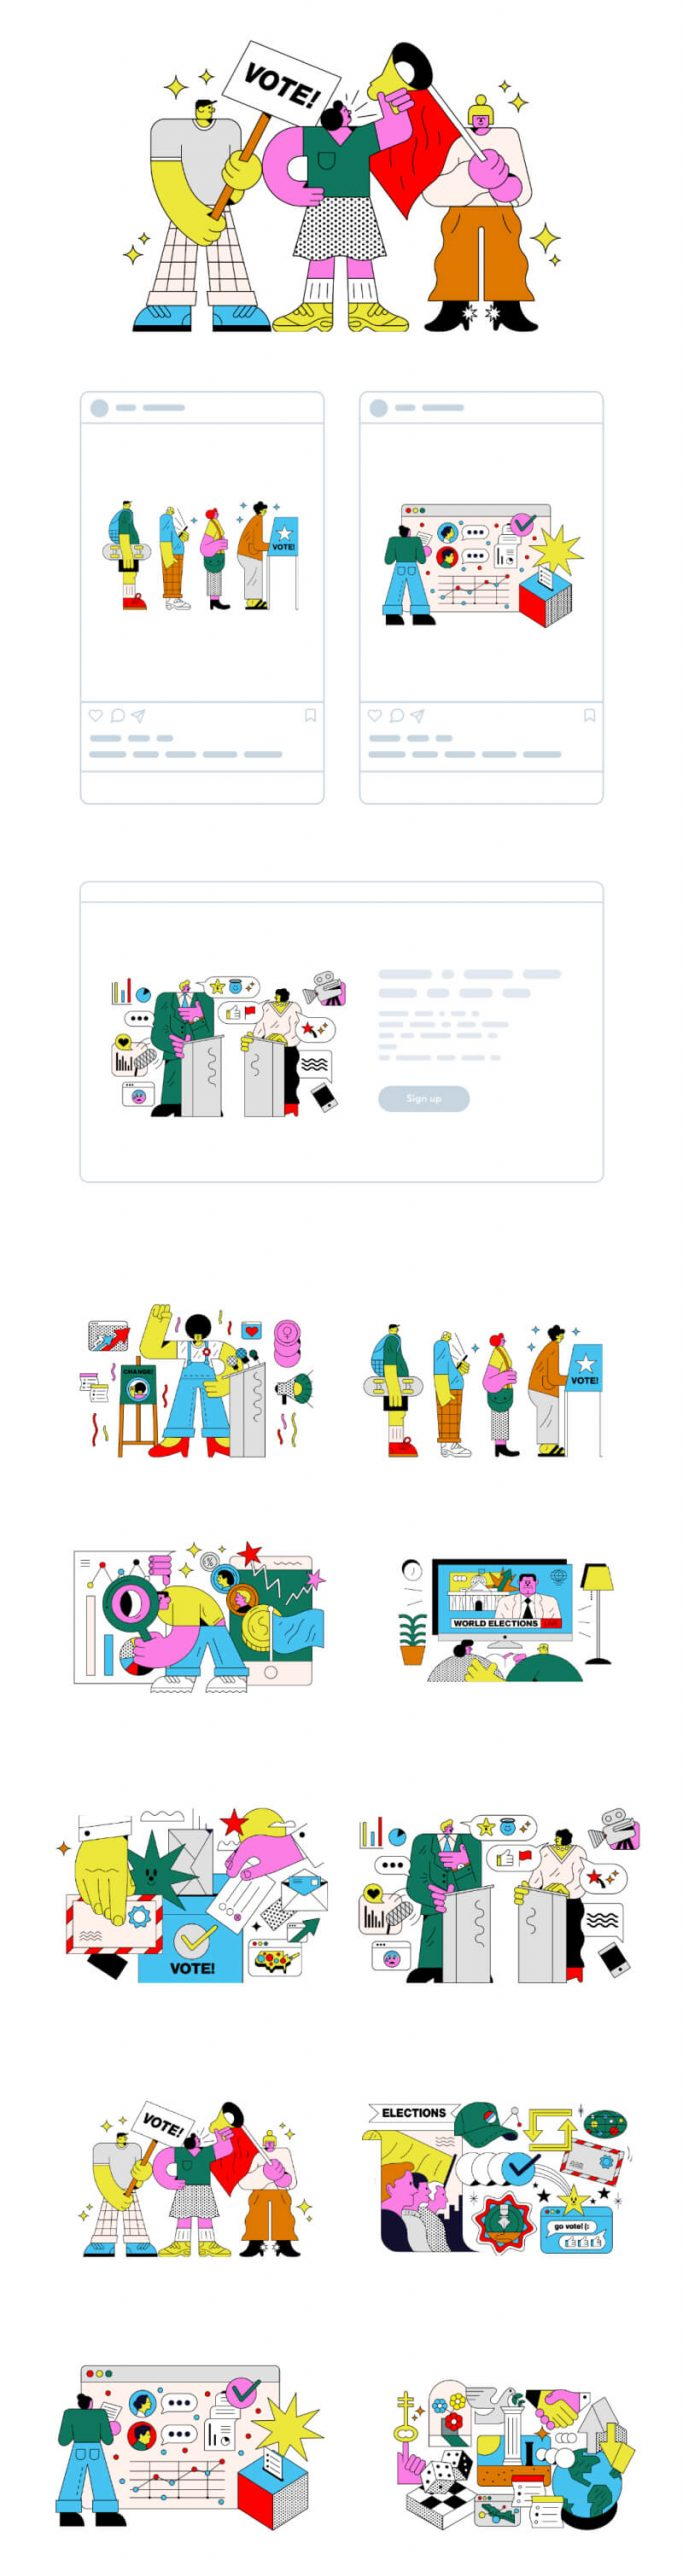 Election Illustrations 2 scaled - UI Freebies